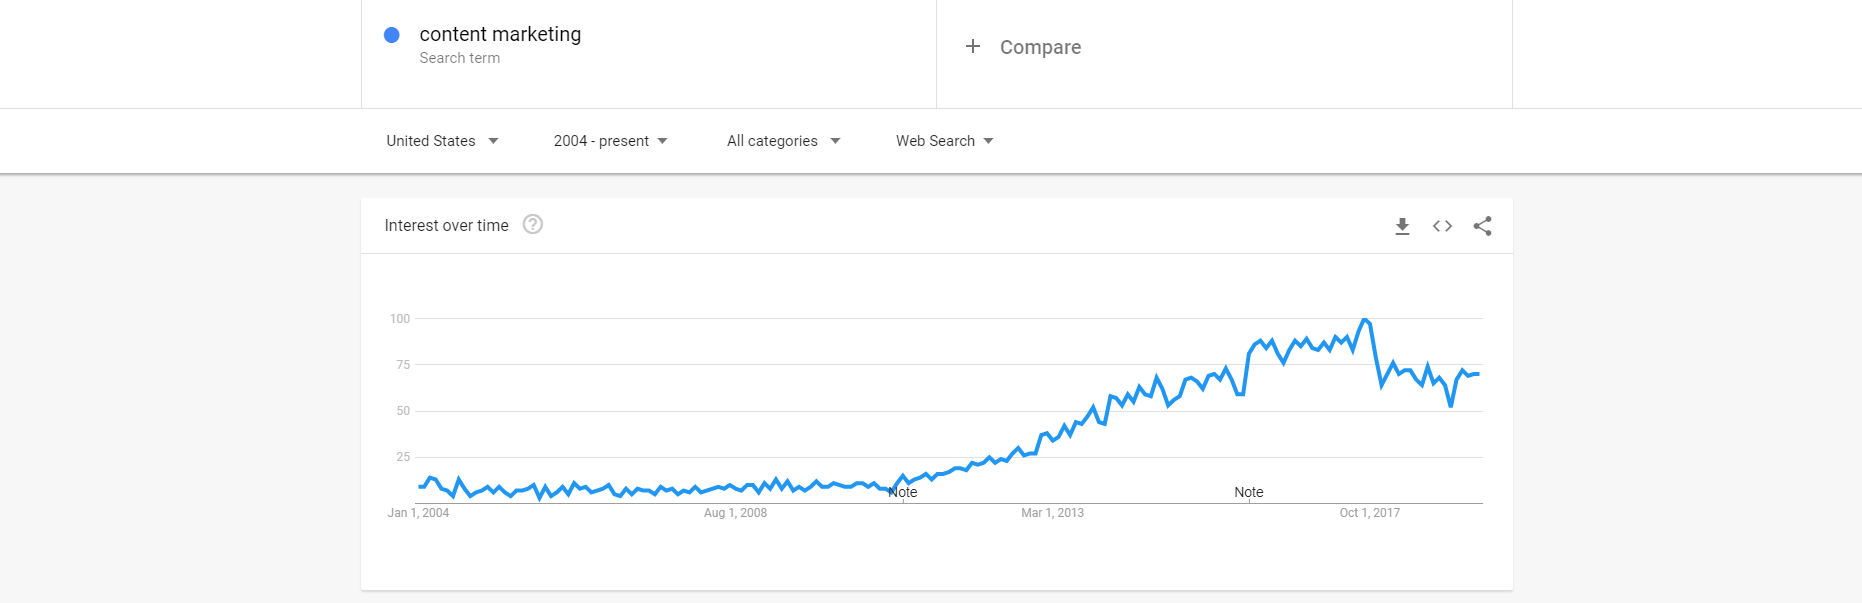 Content marketing on Google Trends